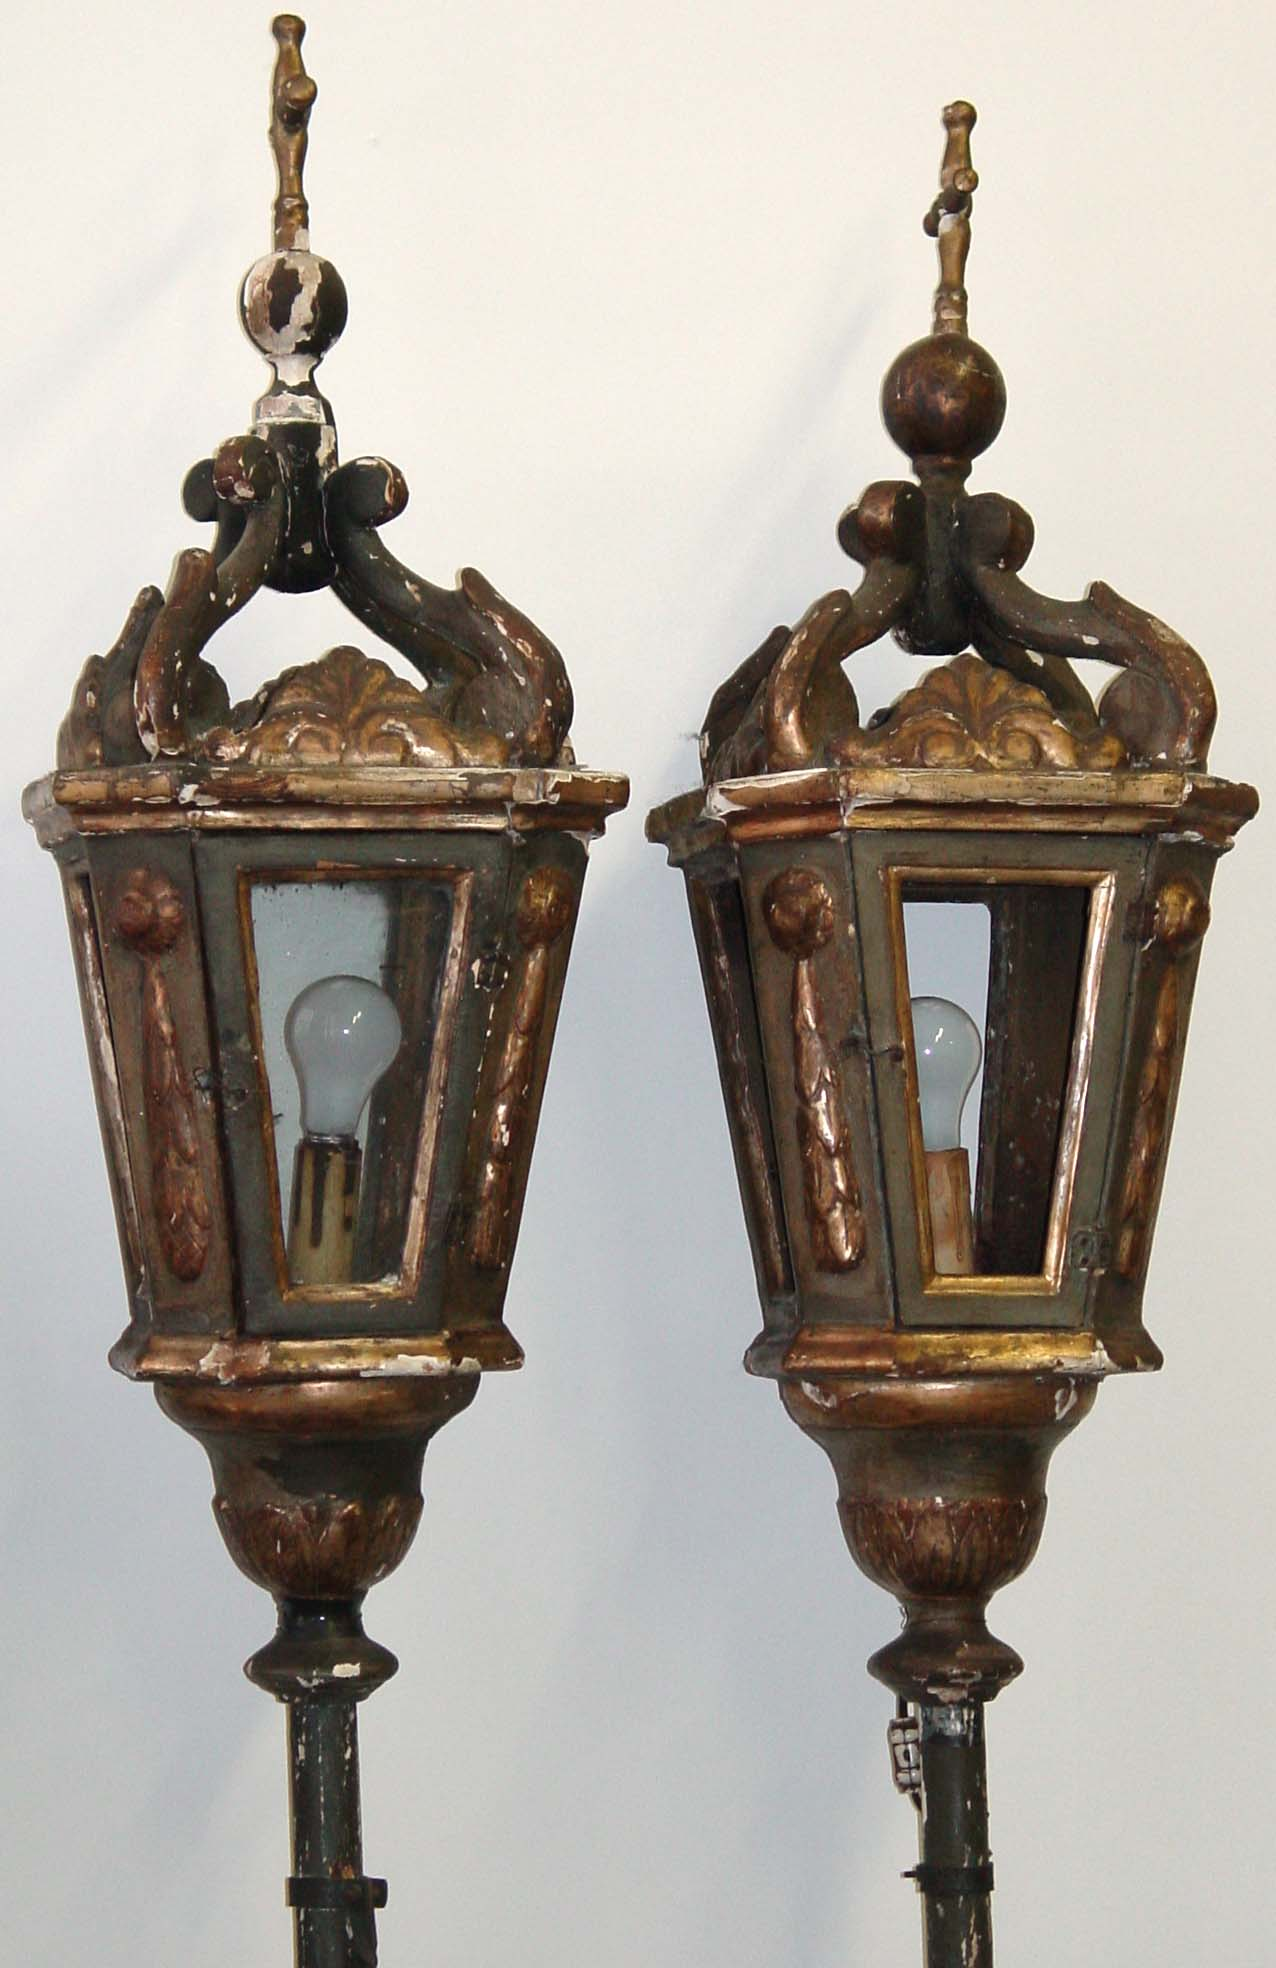 Pair of Venetian, Neoclassical Gondola lanterns